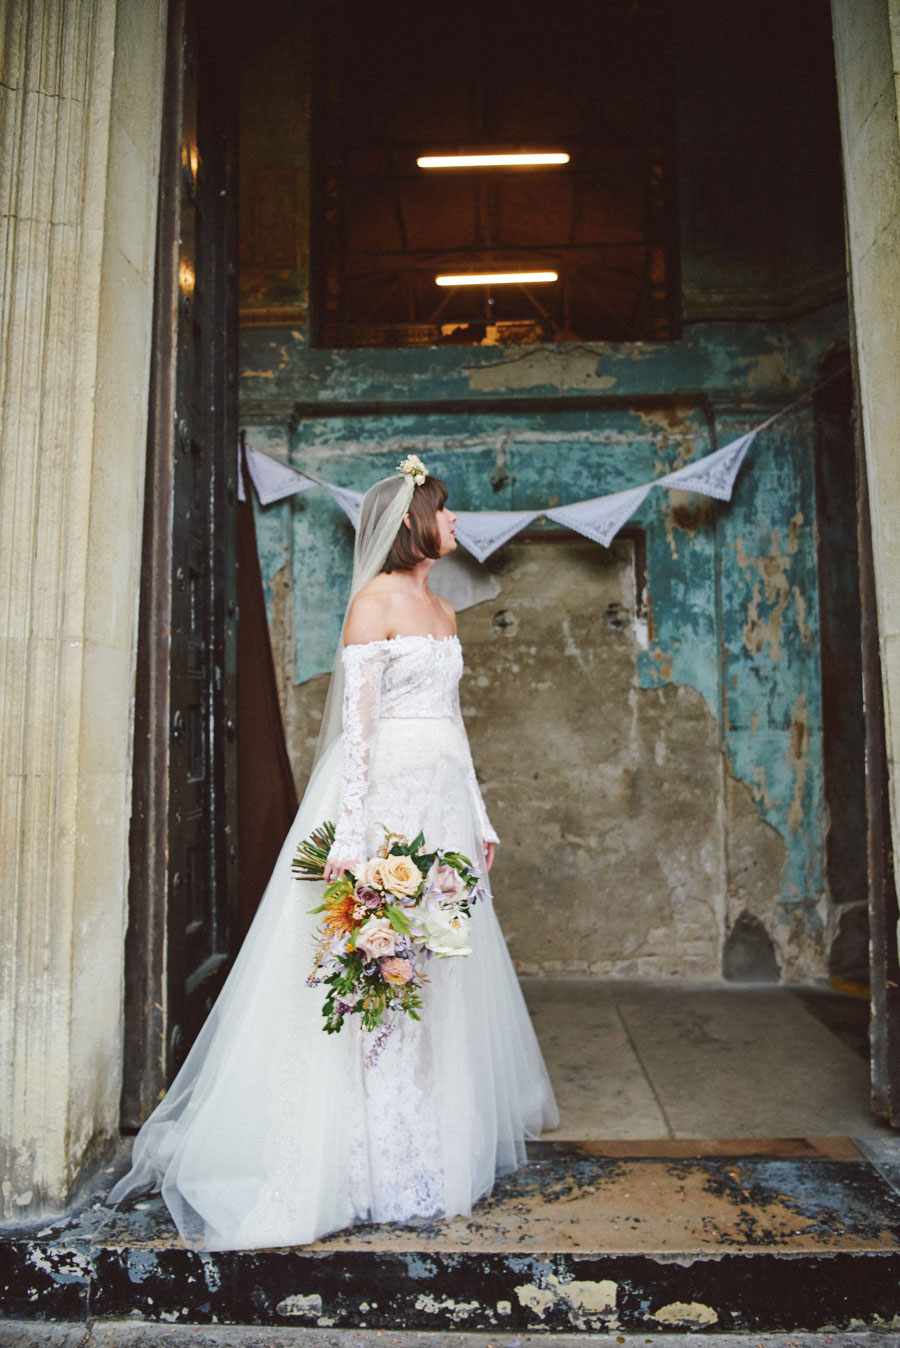 Stunning Off The Shoulder Lace Wedding Dress & Alternative Decaying Chapel Venue Wedding- Ella & Daniel069